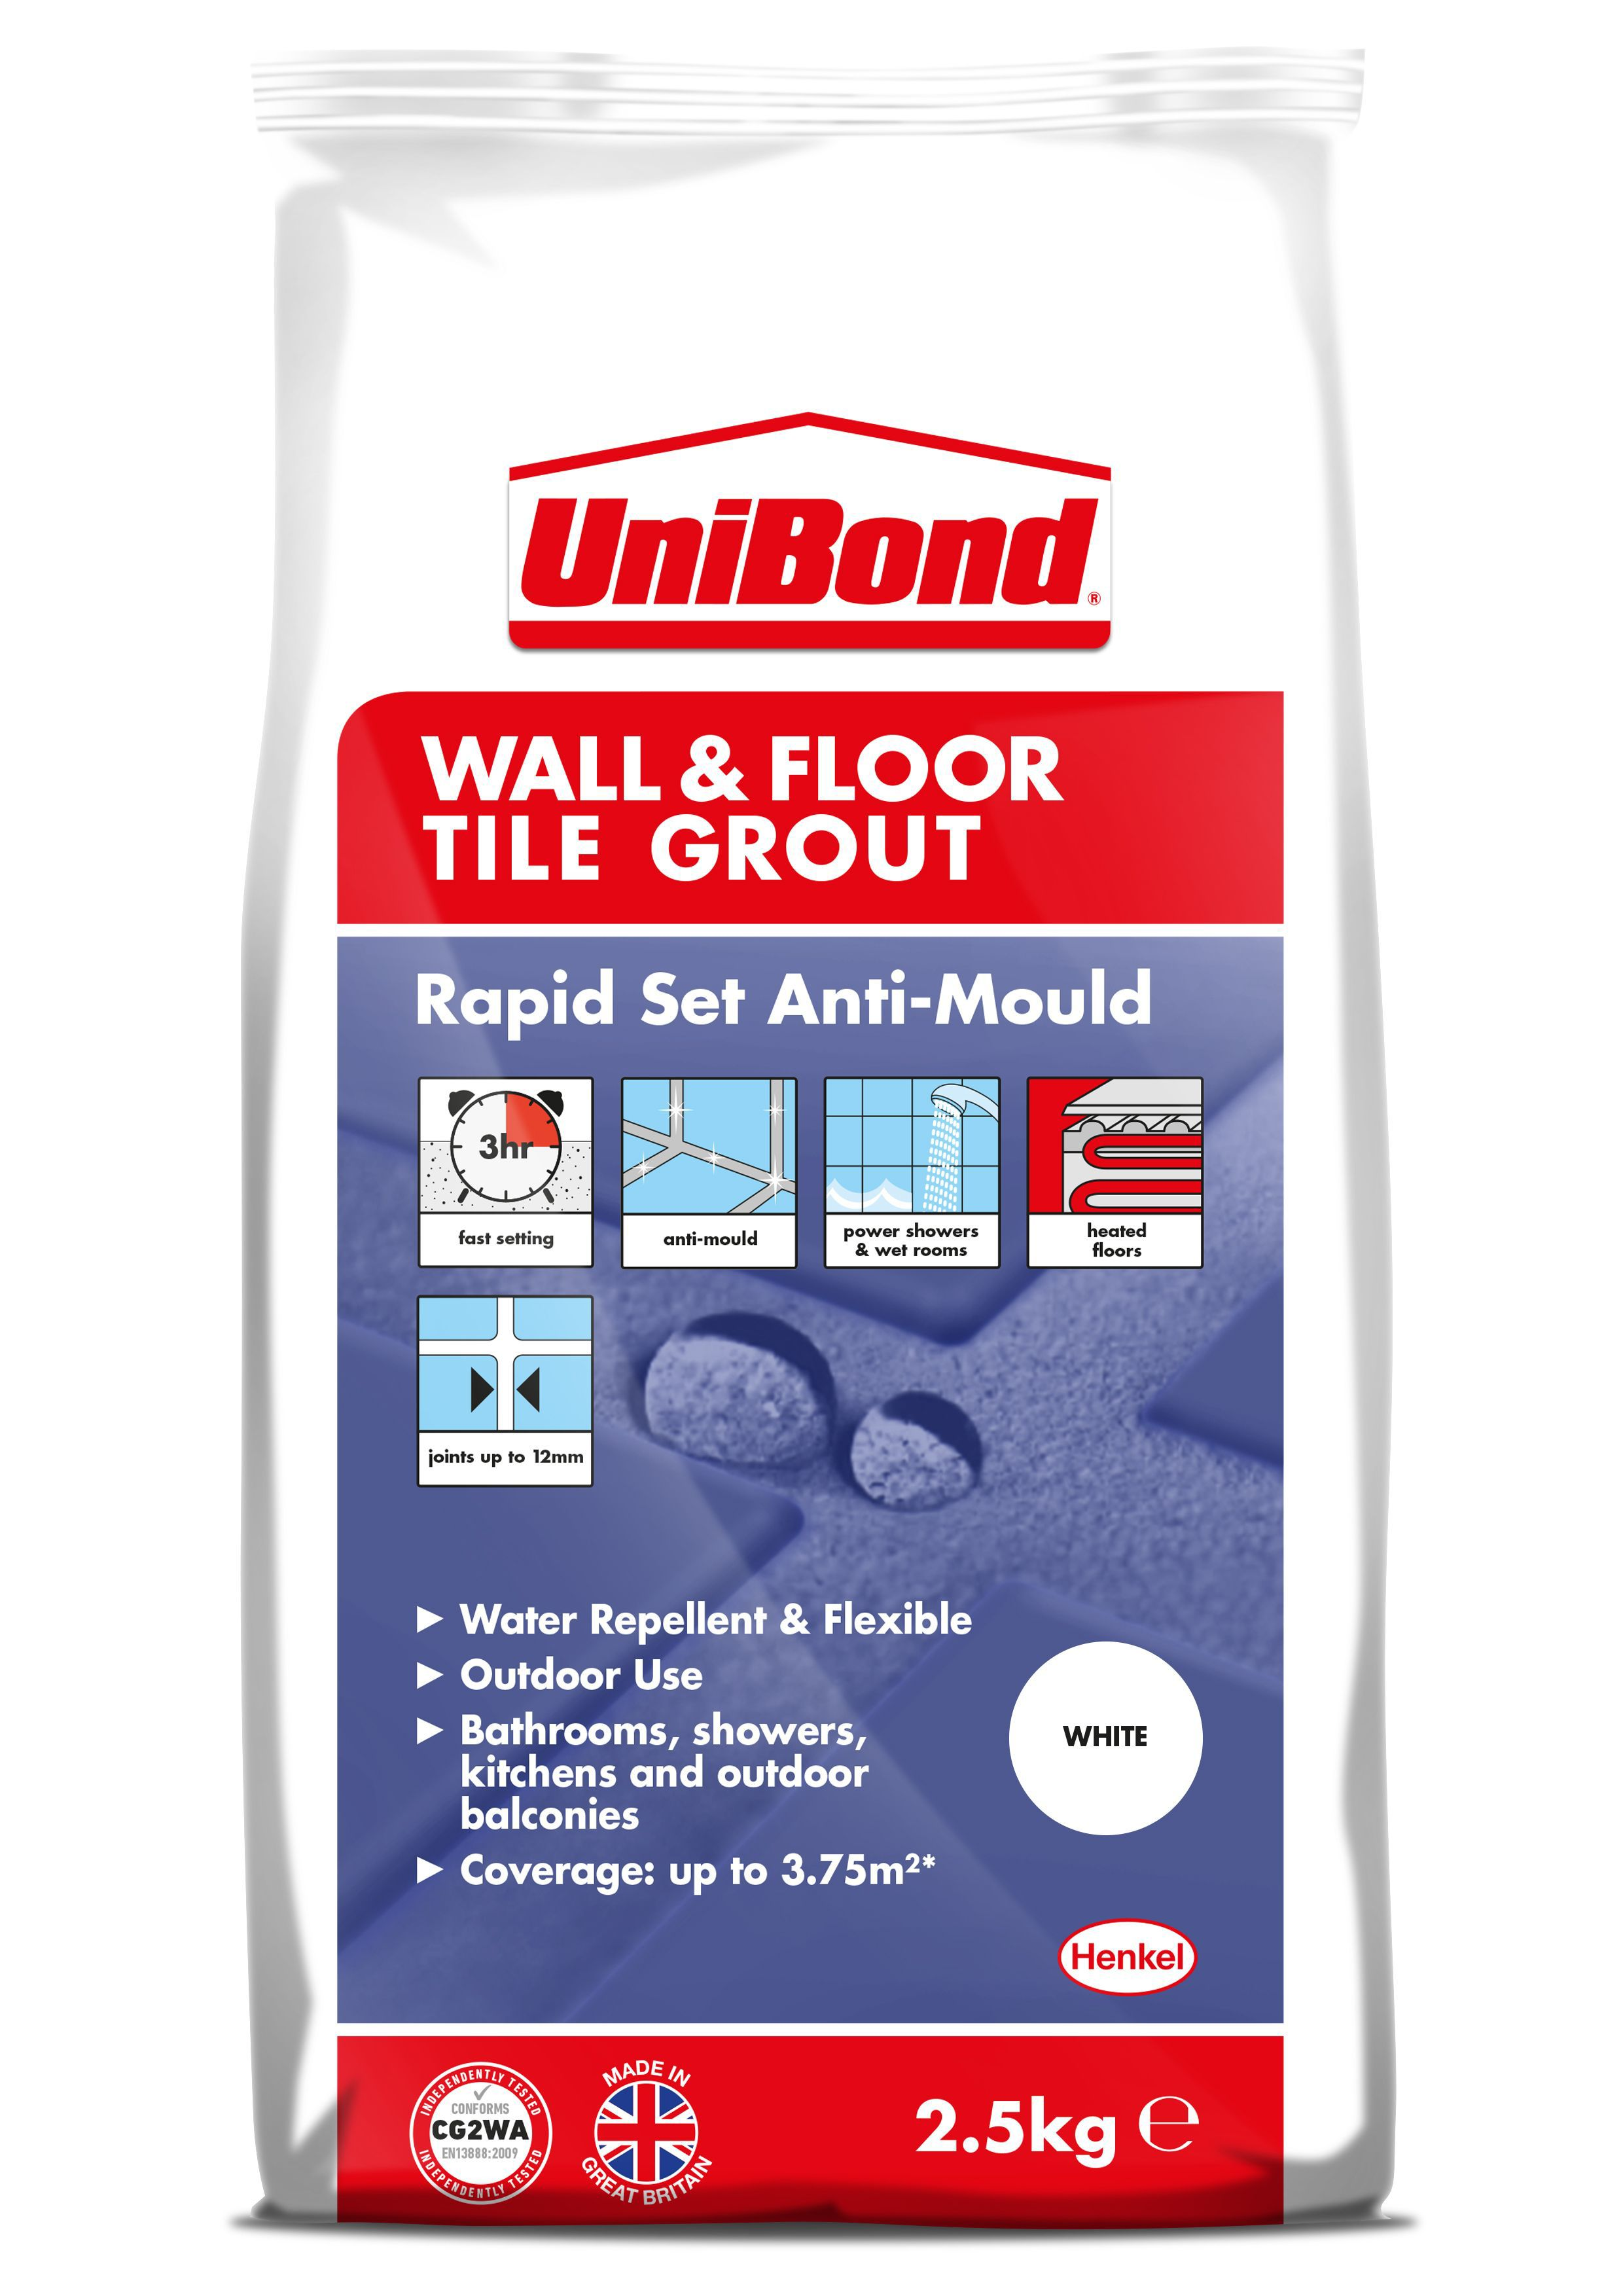 Unibond rapid set flexible white wall floor tile grout w25kg unibond rapid set flexible white wall floor tile grout w25kg departments diy at bq dailygadgetfo Gallery